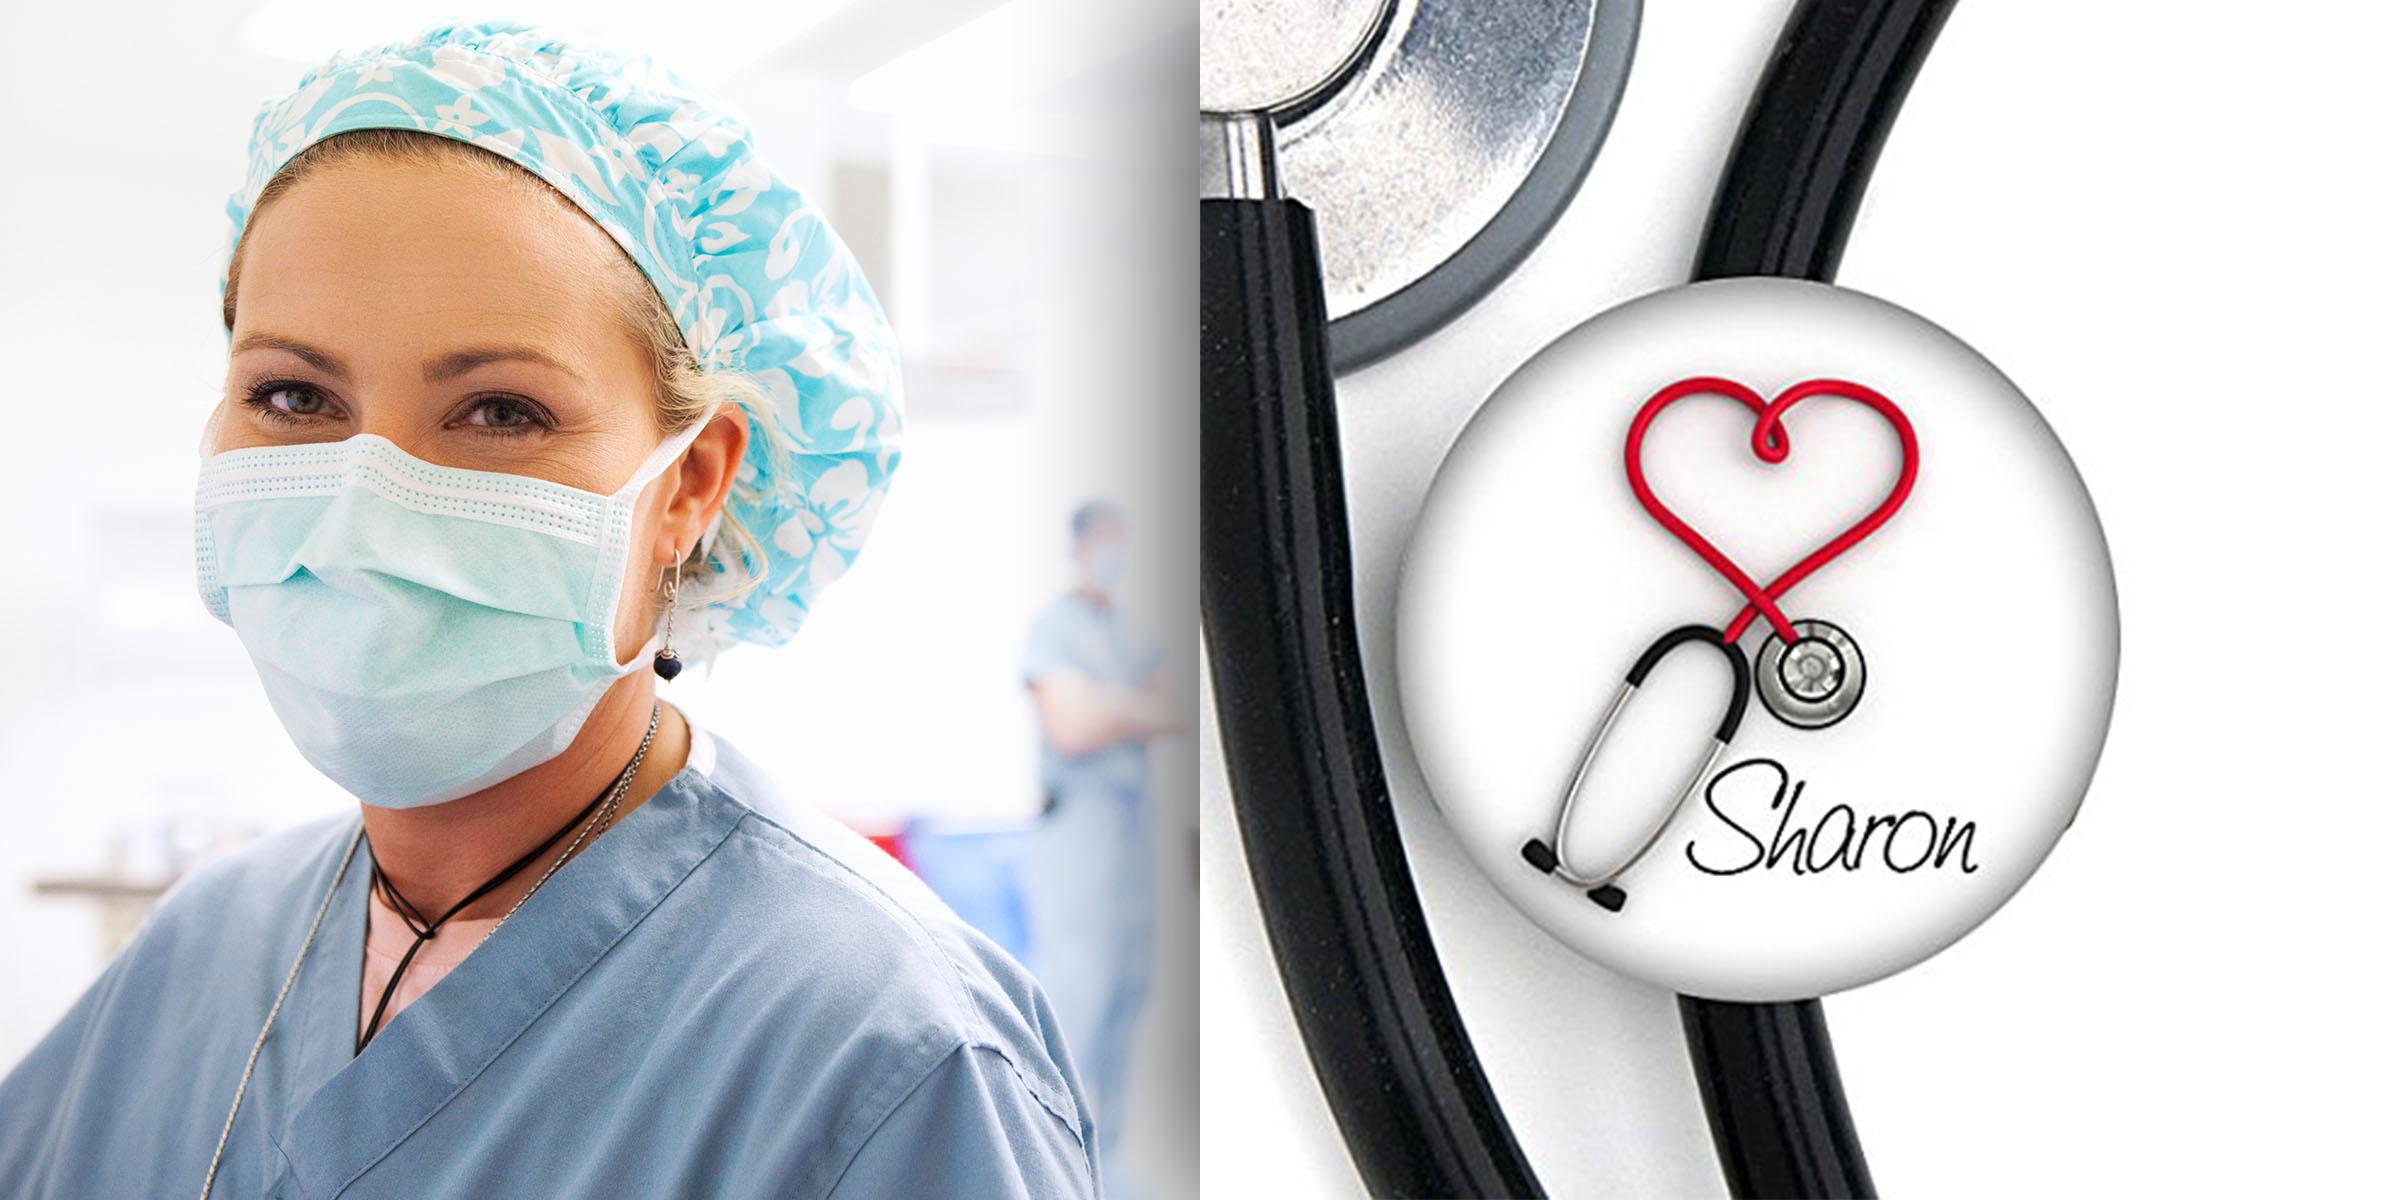 18 Gifts For Nurses To Show Your Appreciation